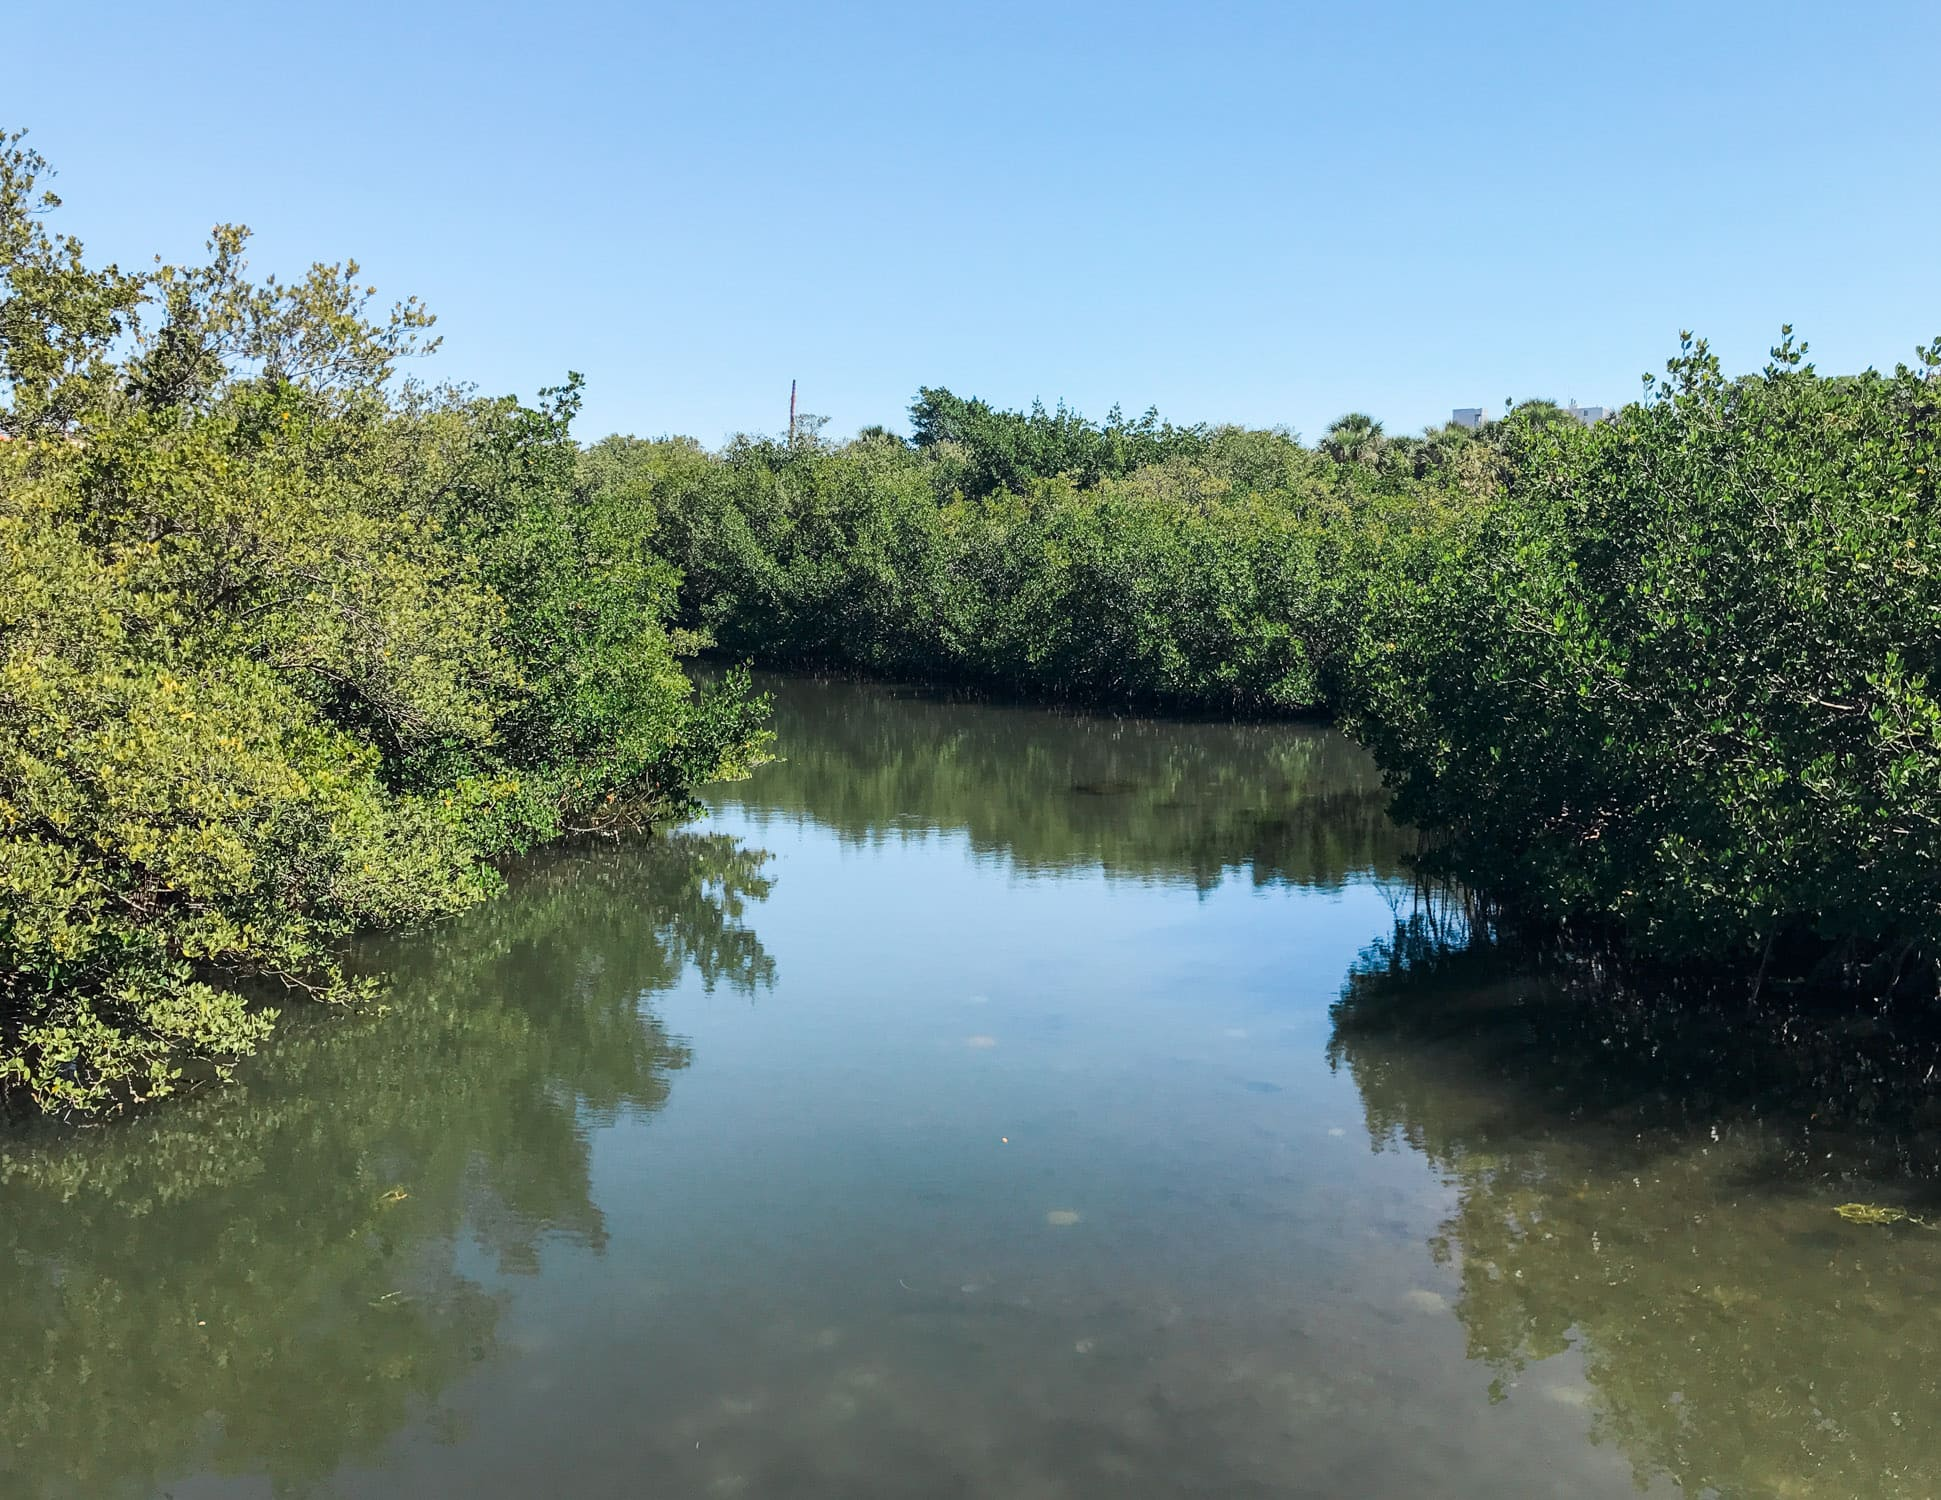 Kayaking in the Longboat Key mangroves | How to plan an adventurous weekend getaway in Longboat Key, Florida including a day of boating! #LoveFL sponsored by @visitflorida | Florida travel tips, beach vacation, vacation ideas, vacation goals, travel blogger Ashley Brooke Nicholas, Florida travel guide, Longboat Key travel guide, Sarasota travel guide, beautiful beaches, boating, affordable travel, US travel, summer vacation, spring break ideas